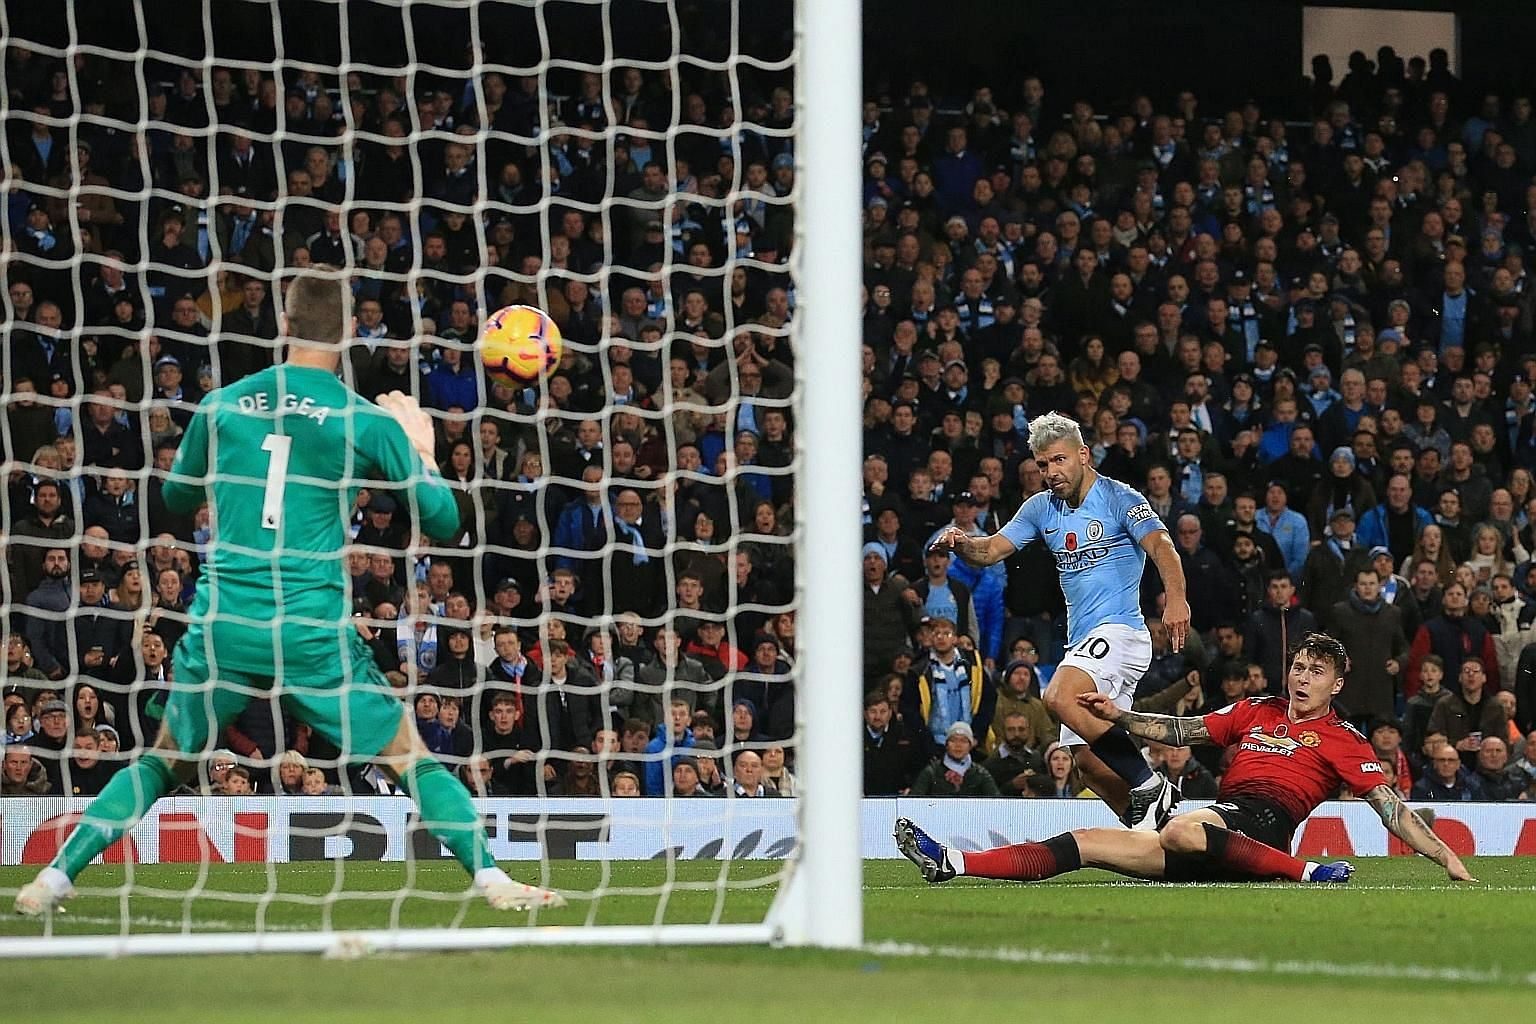 City striker Sergio Aguero beating United defender Victor Lindelof to score past goalkeeper David de Gea and put the hosts 2-0 up in the Manchester derby on Sunday. Anthony Martial netted a spot kick for his team's only shot on target but Ilkay Gundo